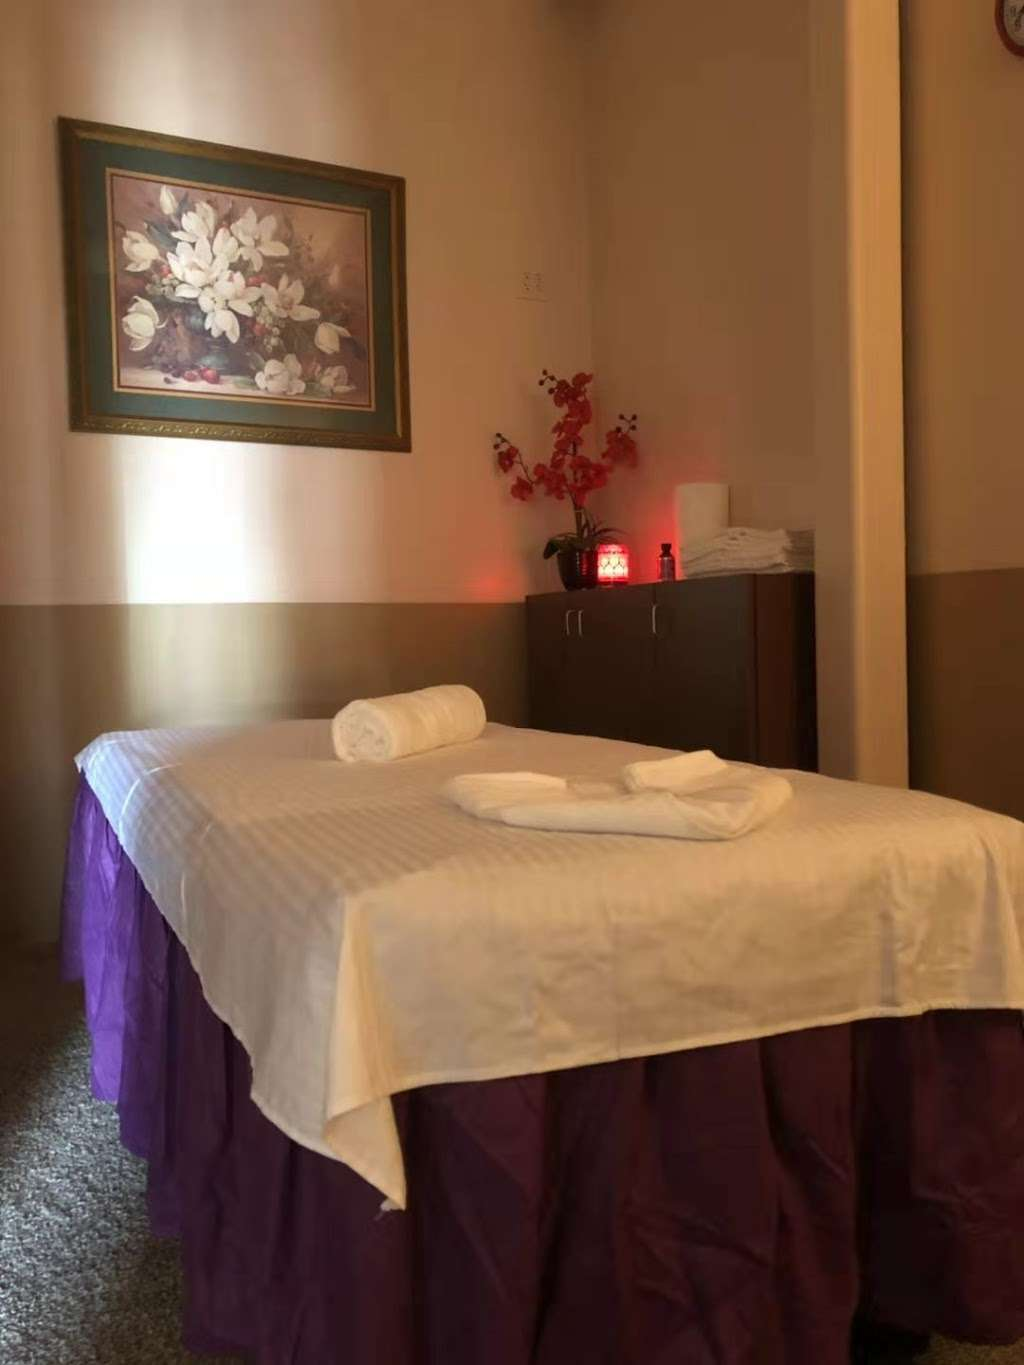 Q MASSAGE - spa  | Photo 6 of 10 | Address: 8790 FM 1960 a101, Humble, TX 77338, USA | Phone: (346) 616-5095